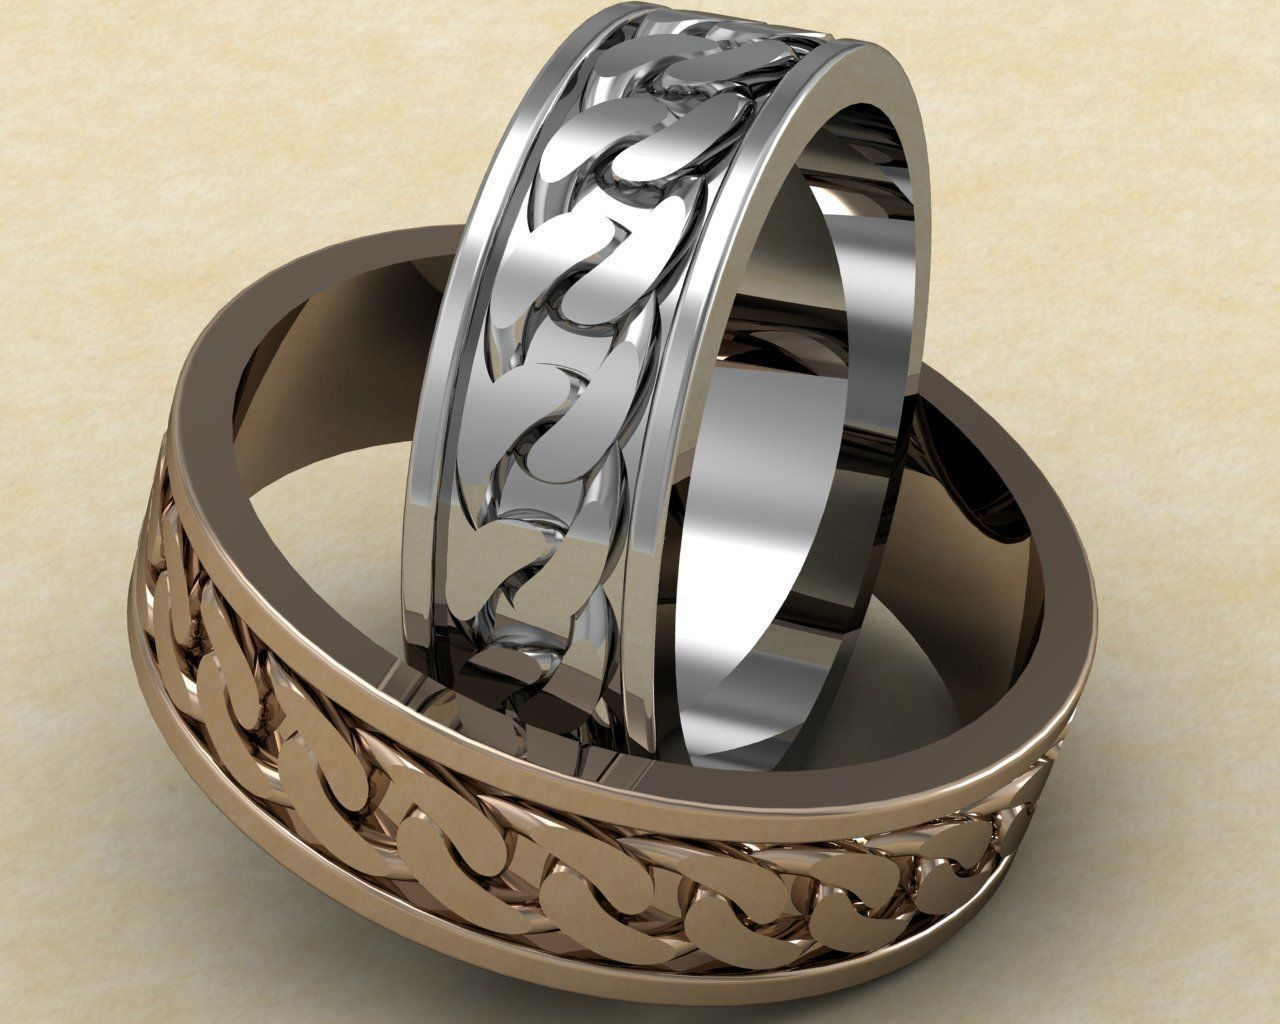 blog forever printed for weddings custom ring are rings wedding